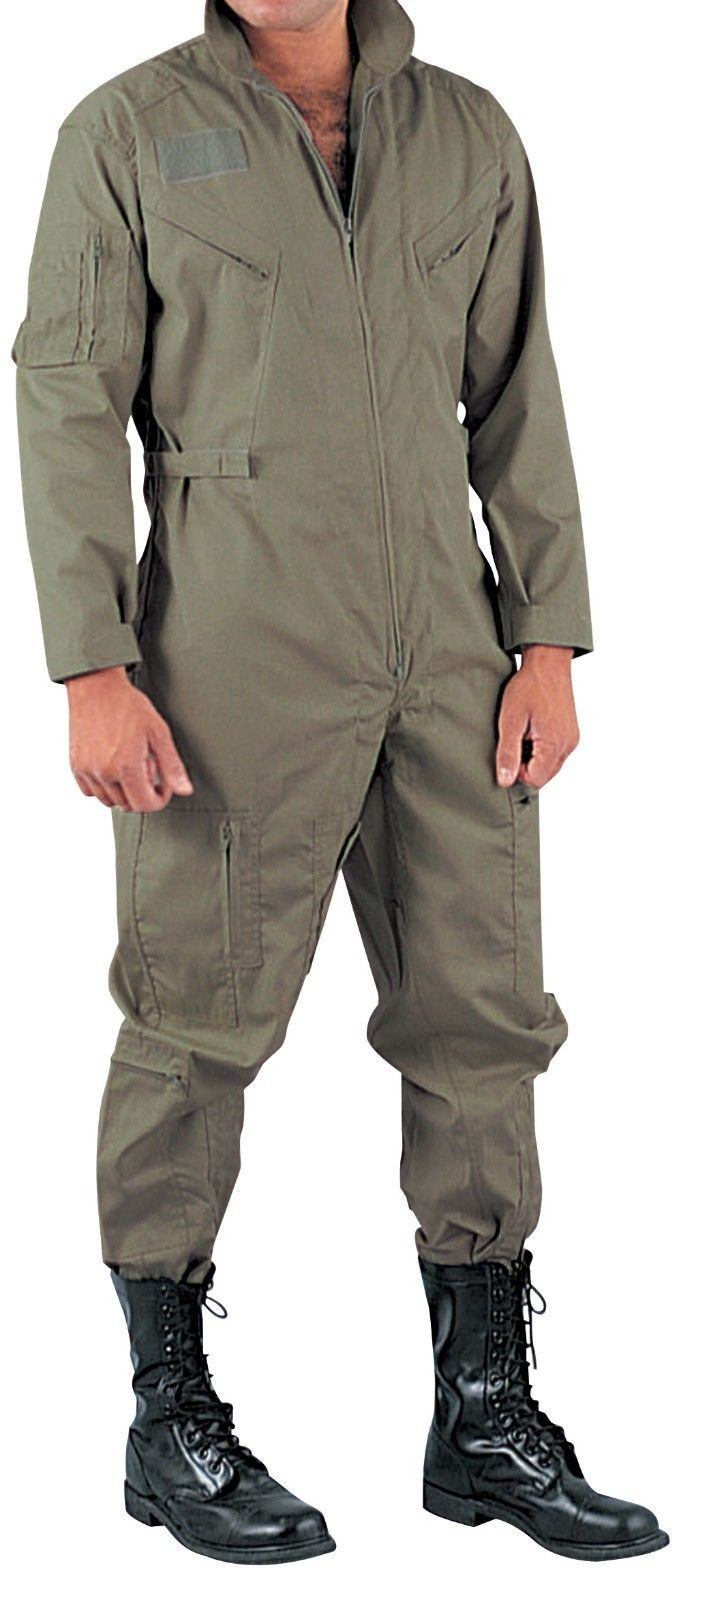 Black Air Force Style Flightsuit Coverall Flight Suit Rothco 7502